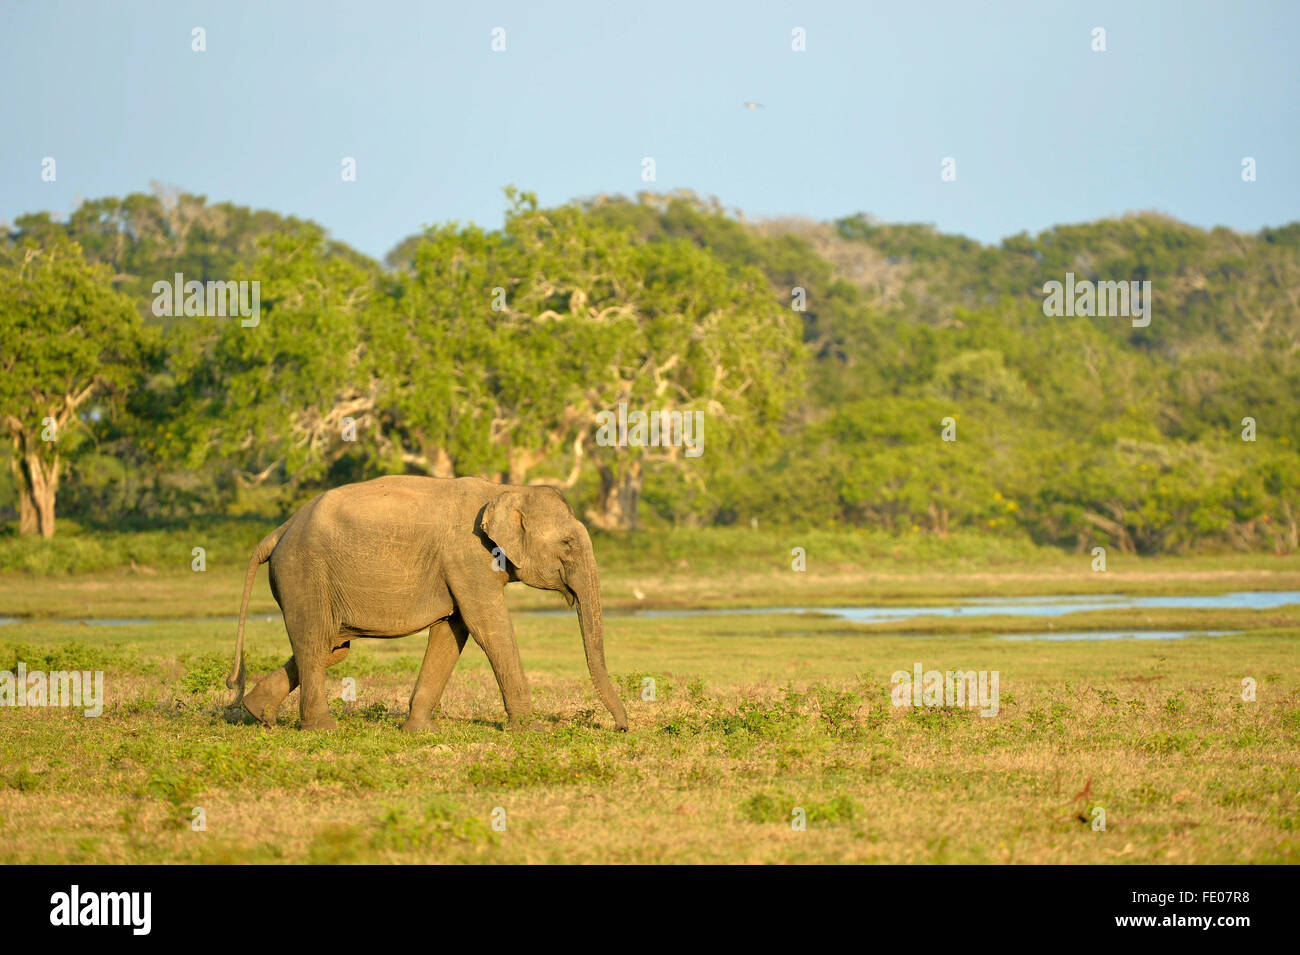 L'éléphant du Sri Lanka (Elephas maximus maximus) marche à travers le Parc National, parc national Photo Stock